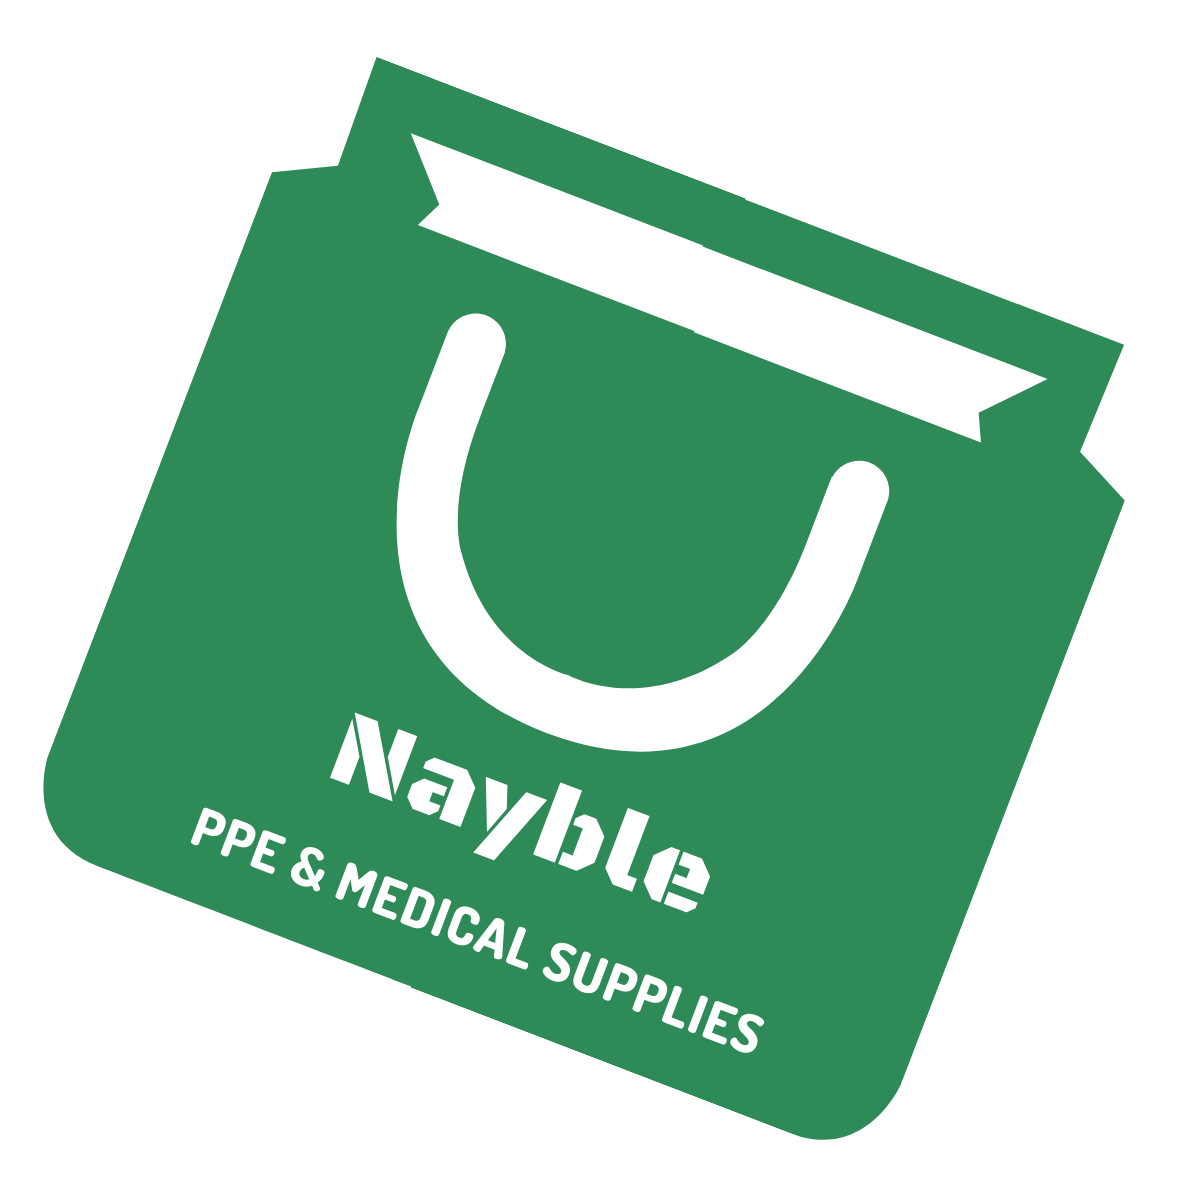 PPE & Medical Supplies